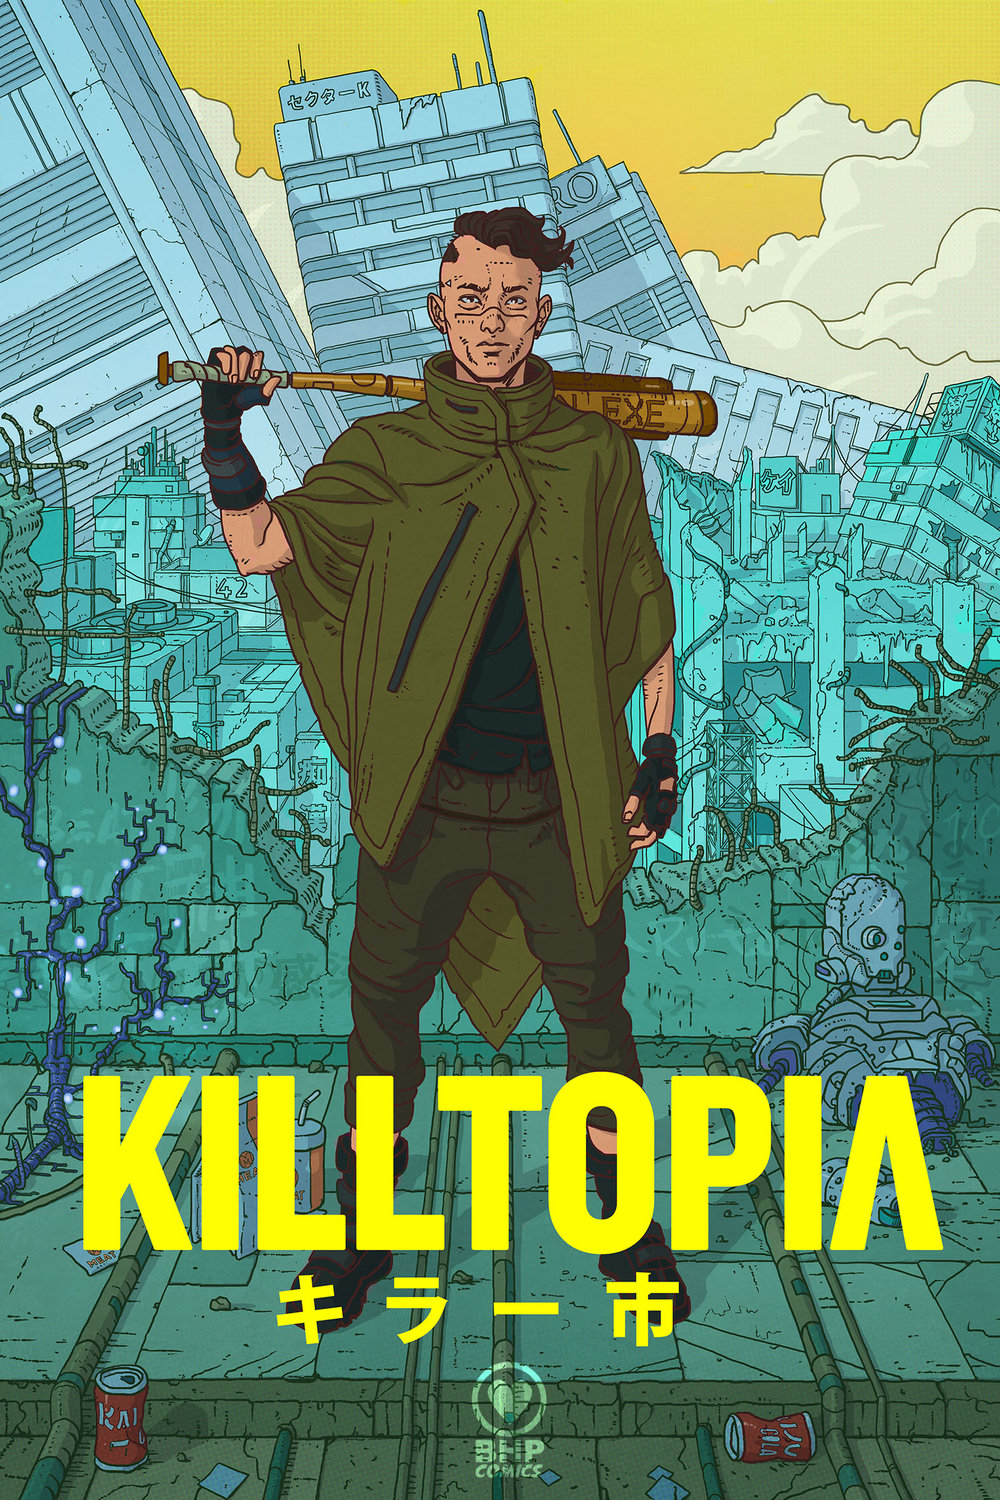 Killtopia by Dave Cook and Craig Paton